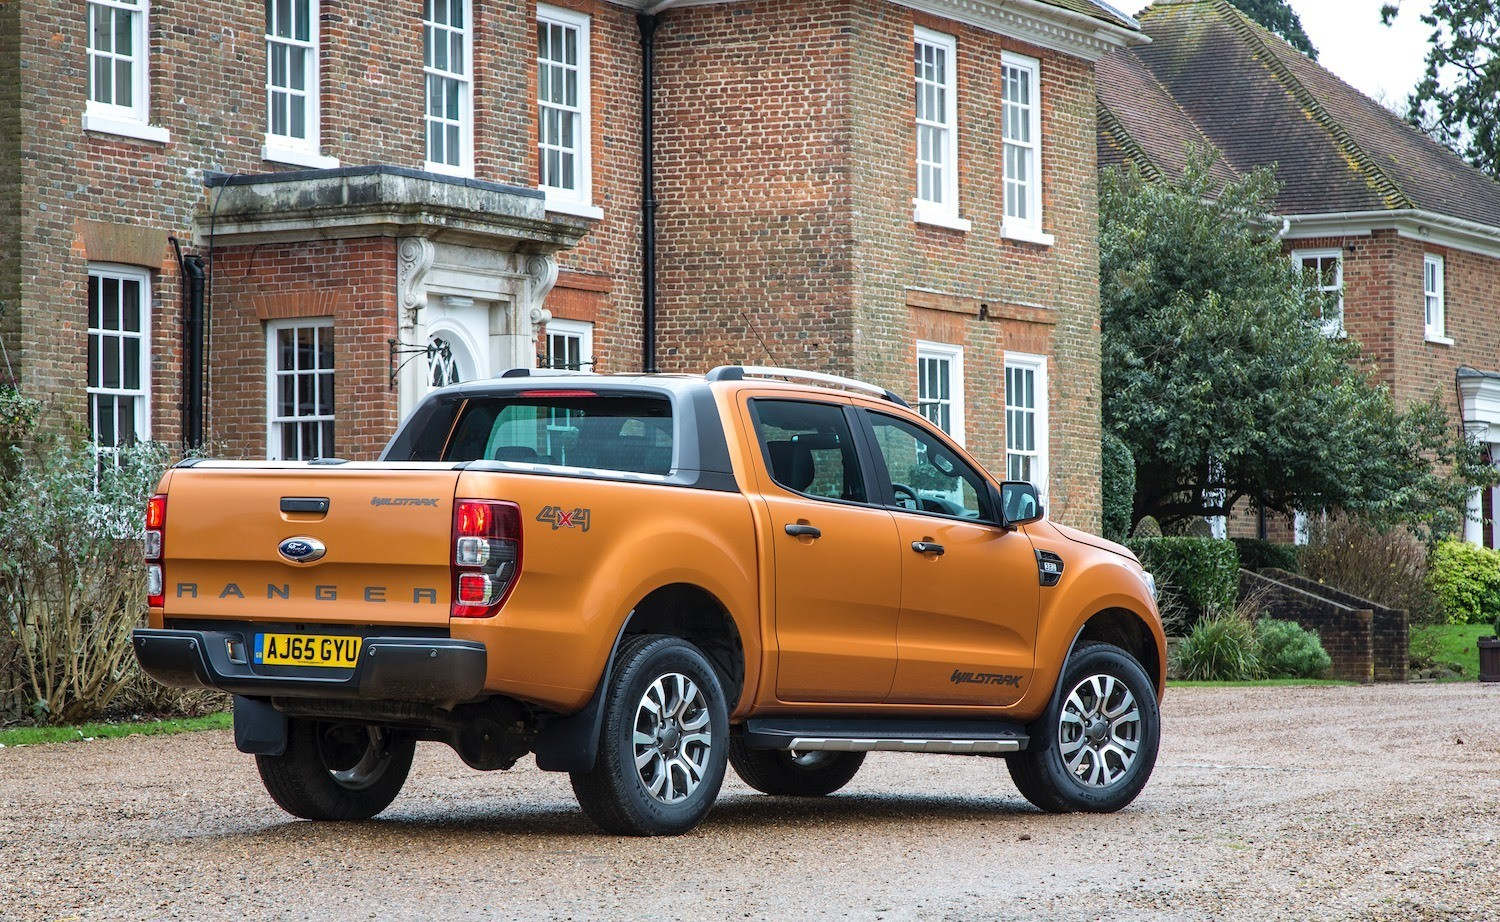 Neil Lyndon revews the Ford Ranger Wildtrak Double Cab for Drive 19